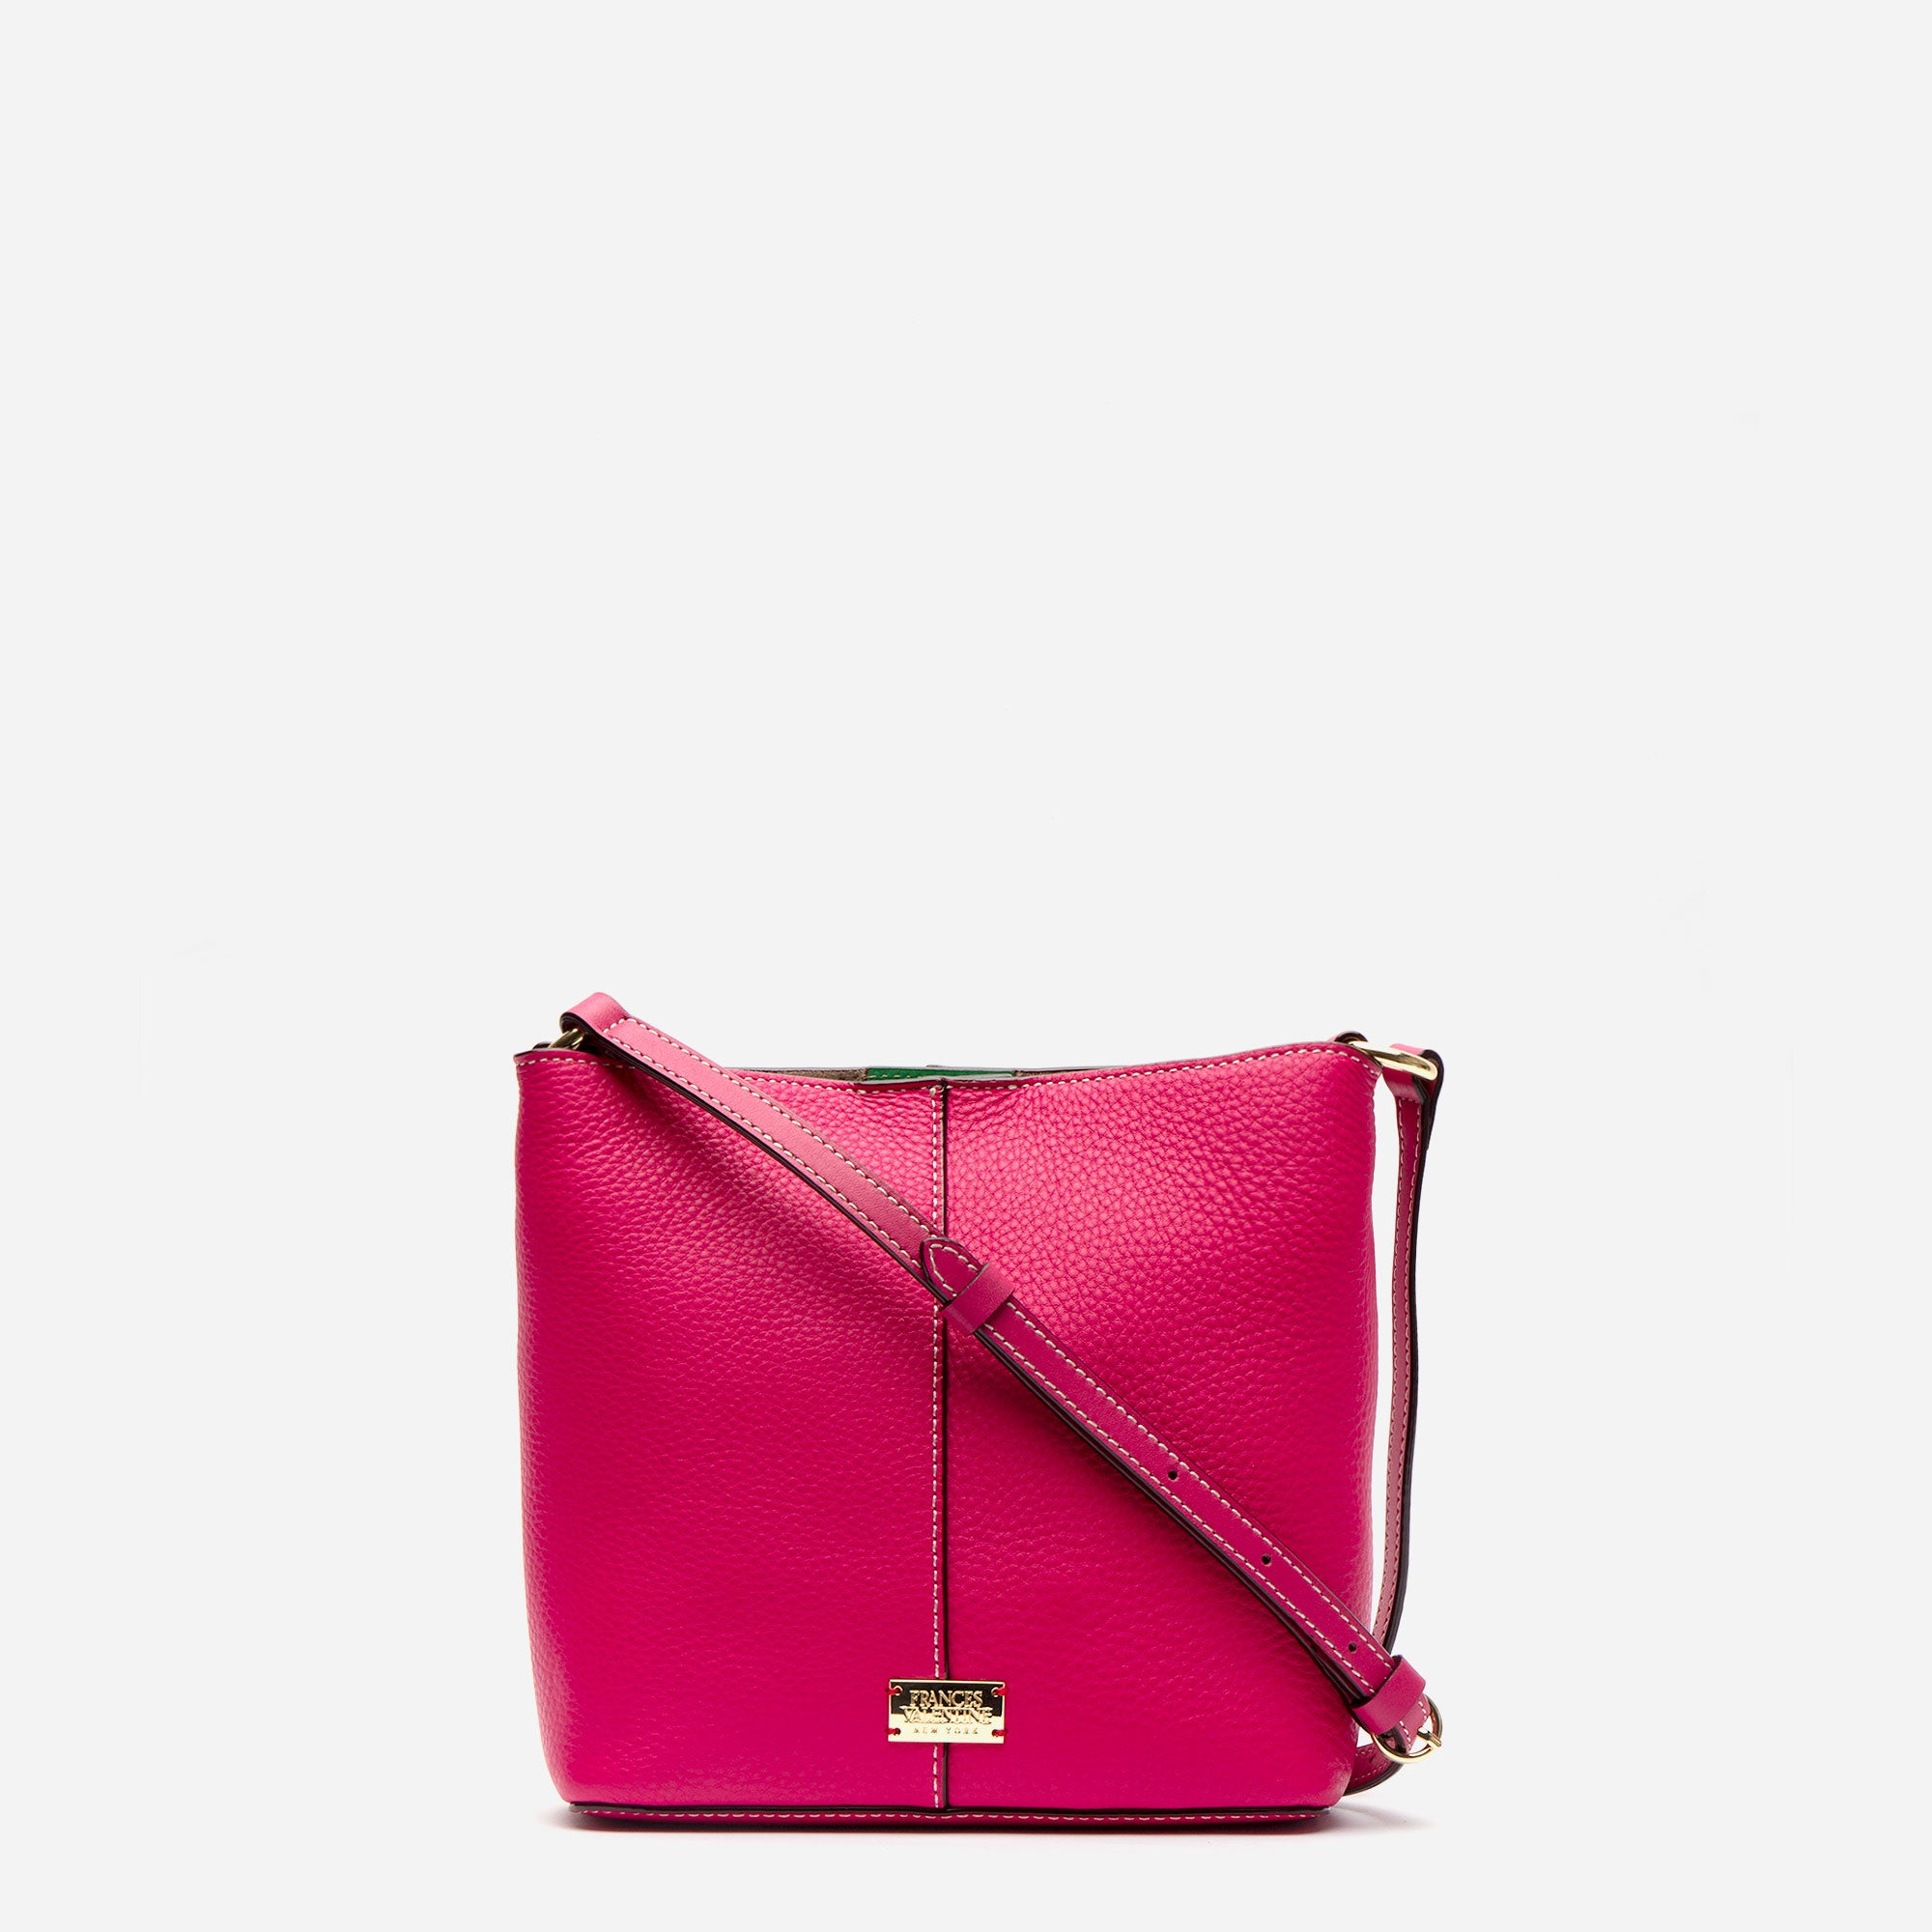 Small Finn Tumbled Leather Pink - Frances Valentine